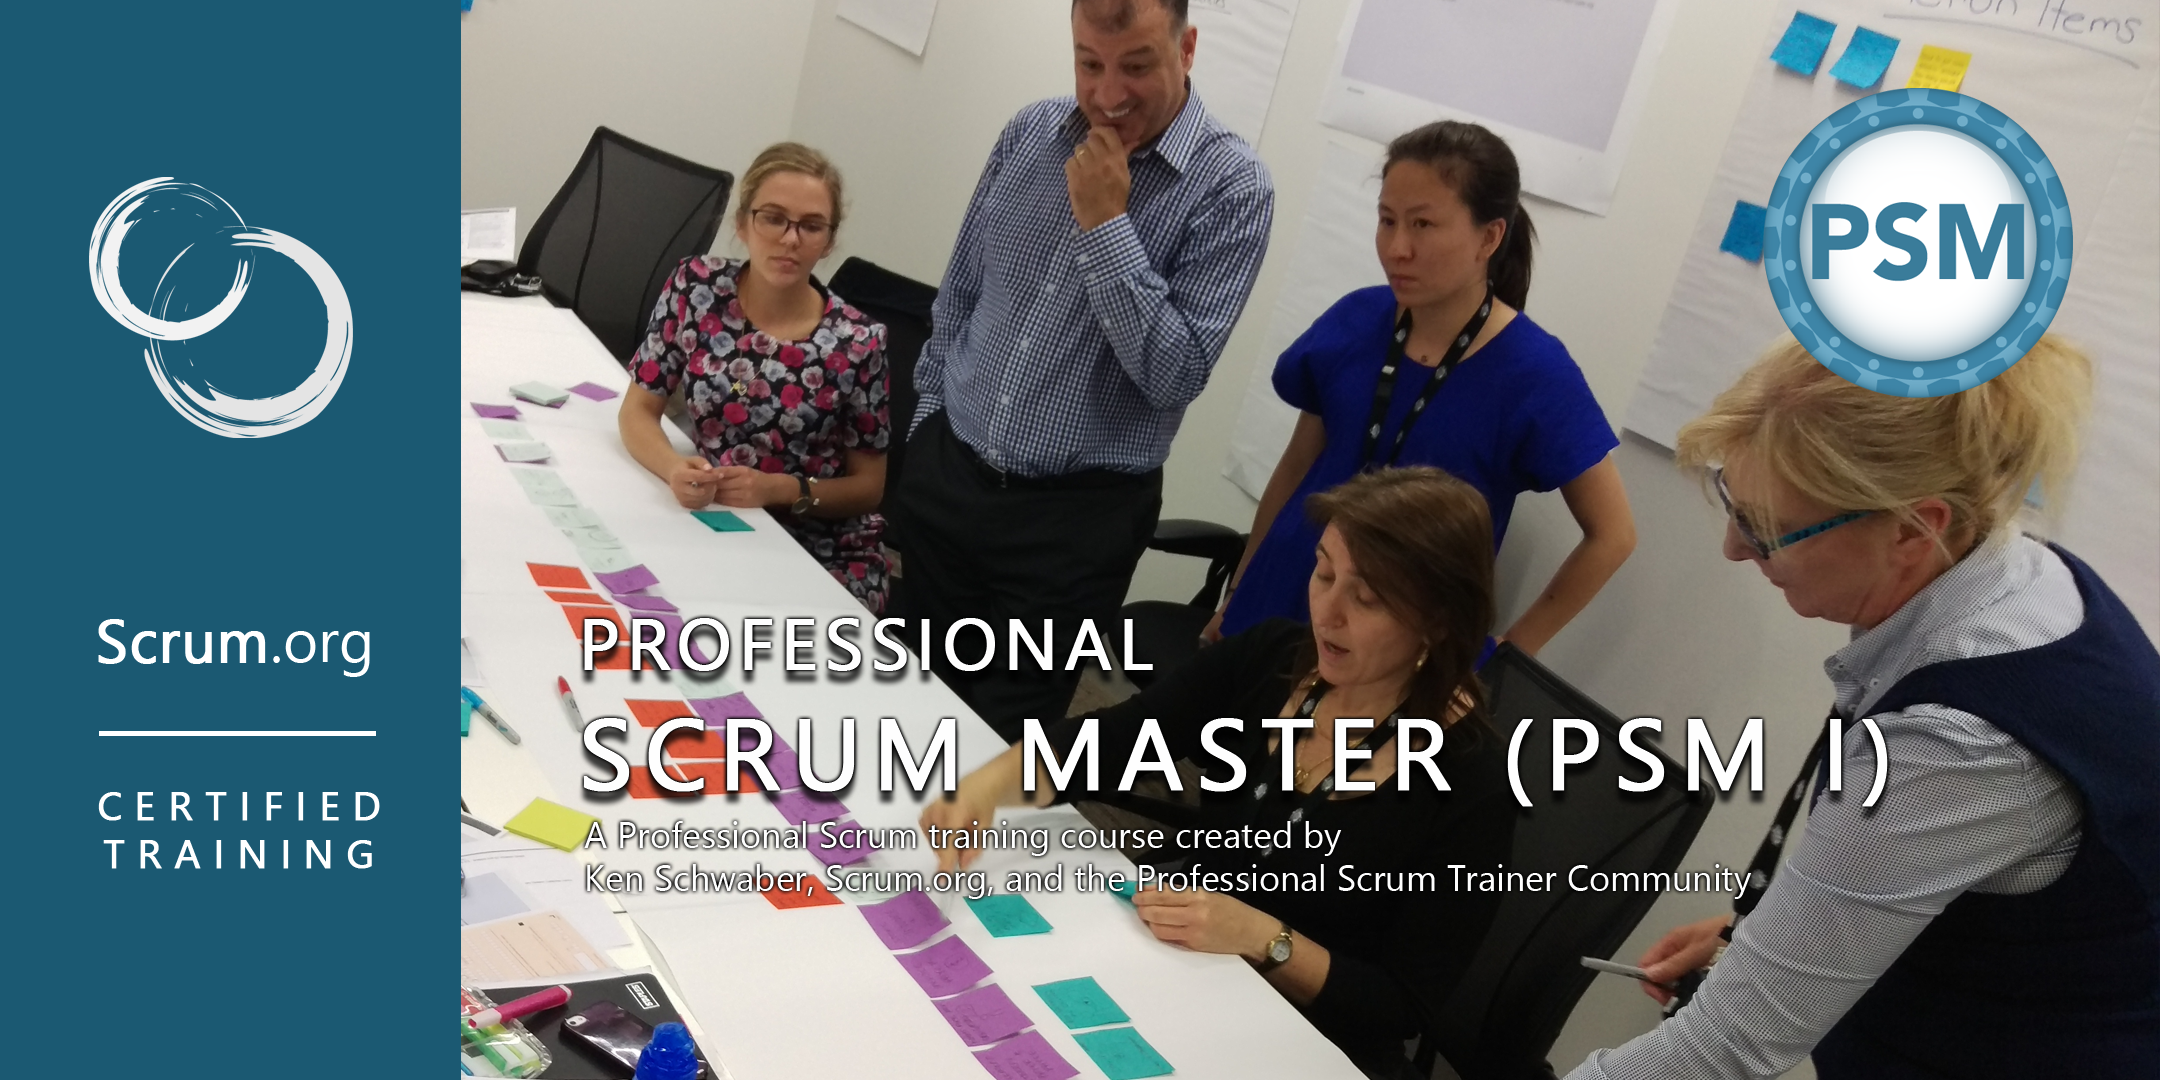 Professional Scrum Master Certification Psm Course With Scrum